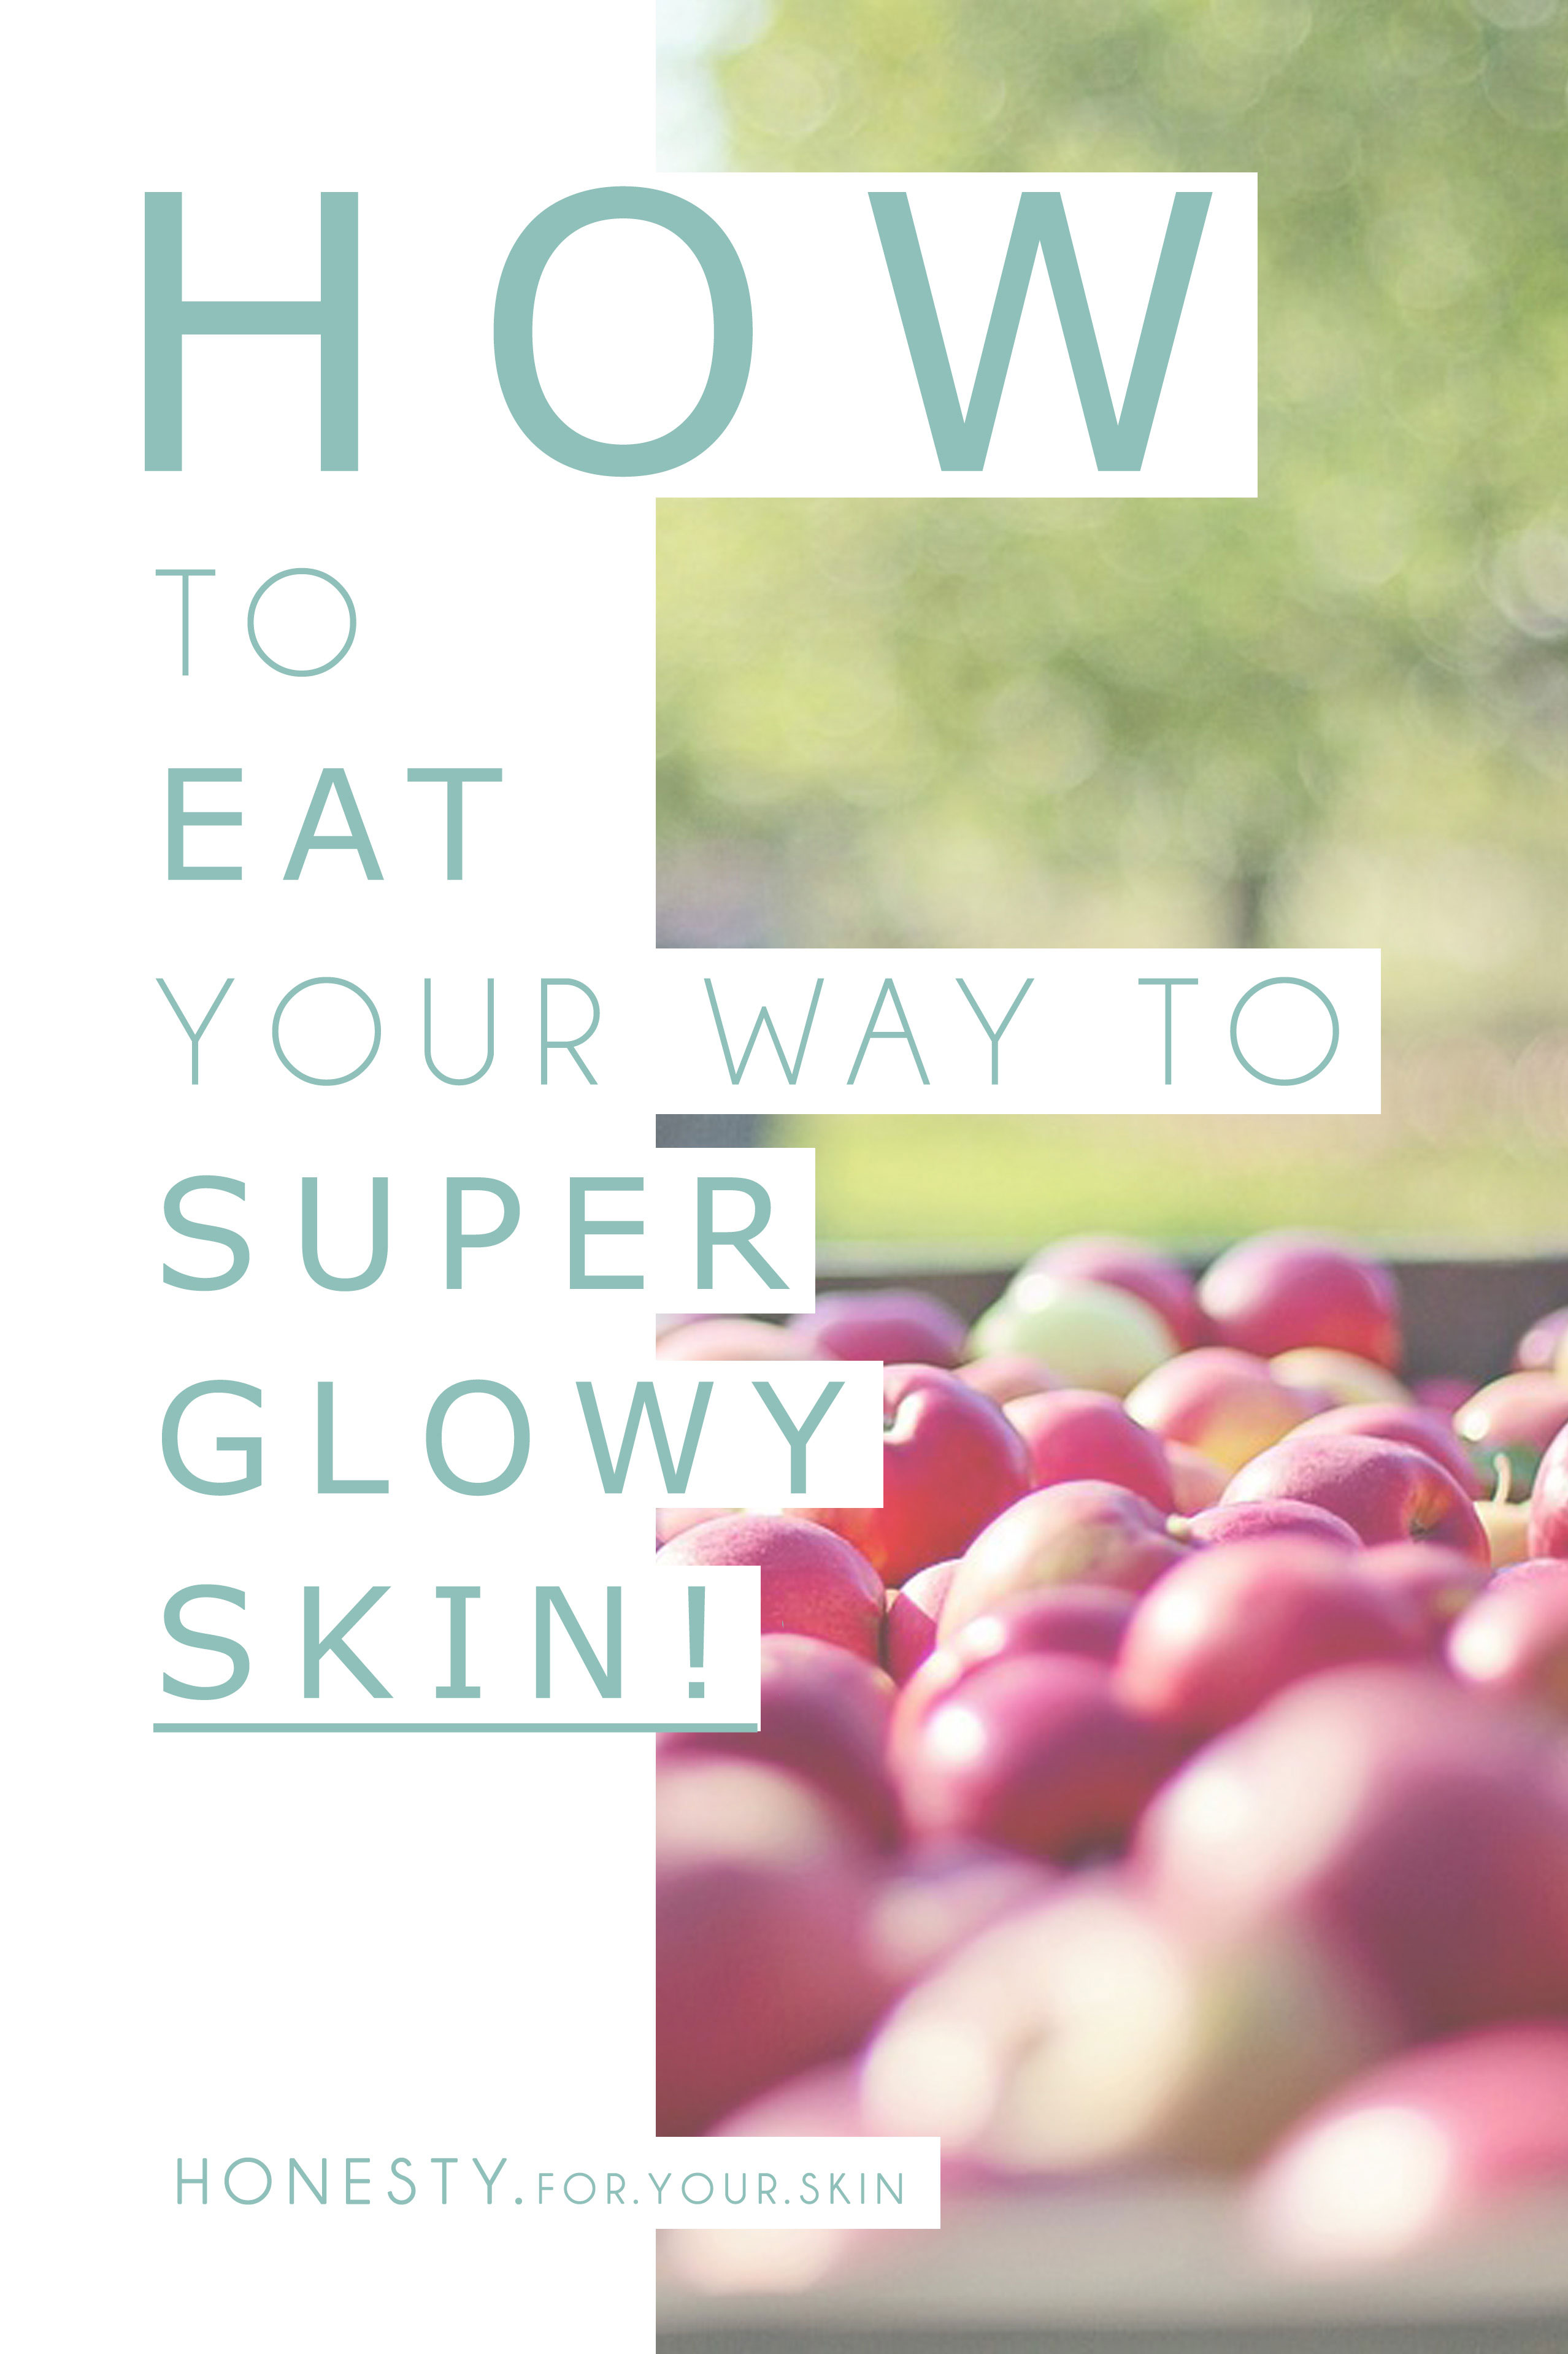 Outside-In is only half the story when it comes to GREAT skin. Inside-out means EATING foods that MAKE great skin. Your skin 're-news' COMPLETELY every 28 days, that means a change in your diet will take about 28 days to see the FULL effects of. Here is a trusty guide to eating well for SUPER radiant, healthy & 'glowy' skin.